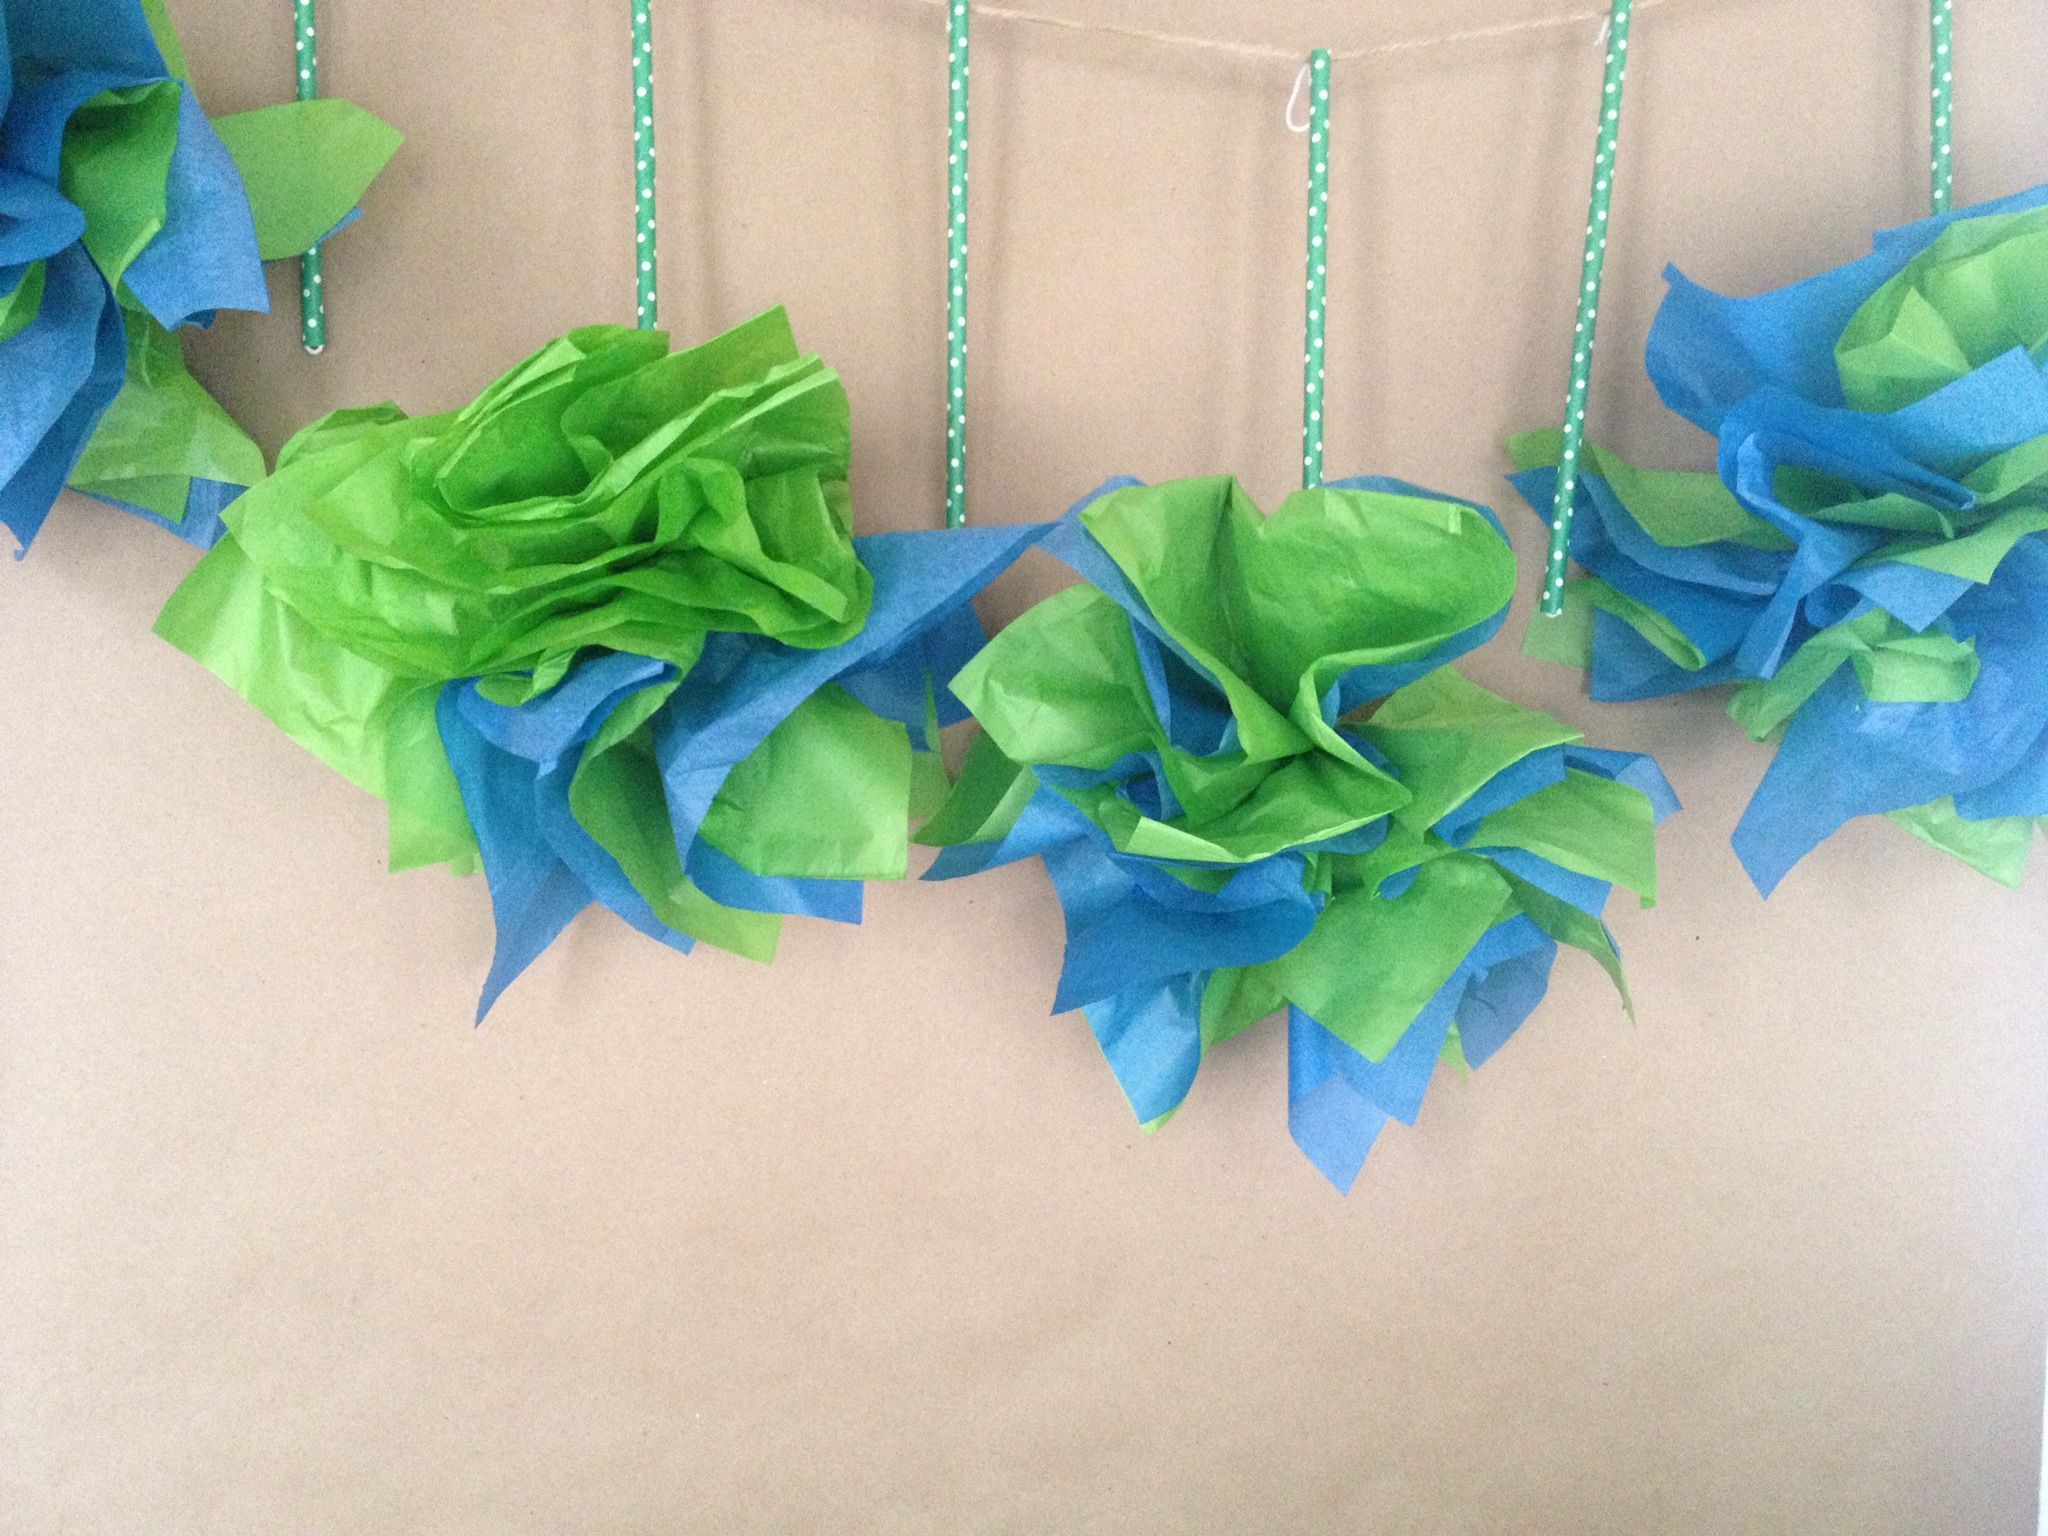 make a tissue or napkin garland